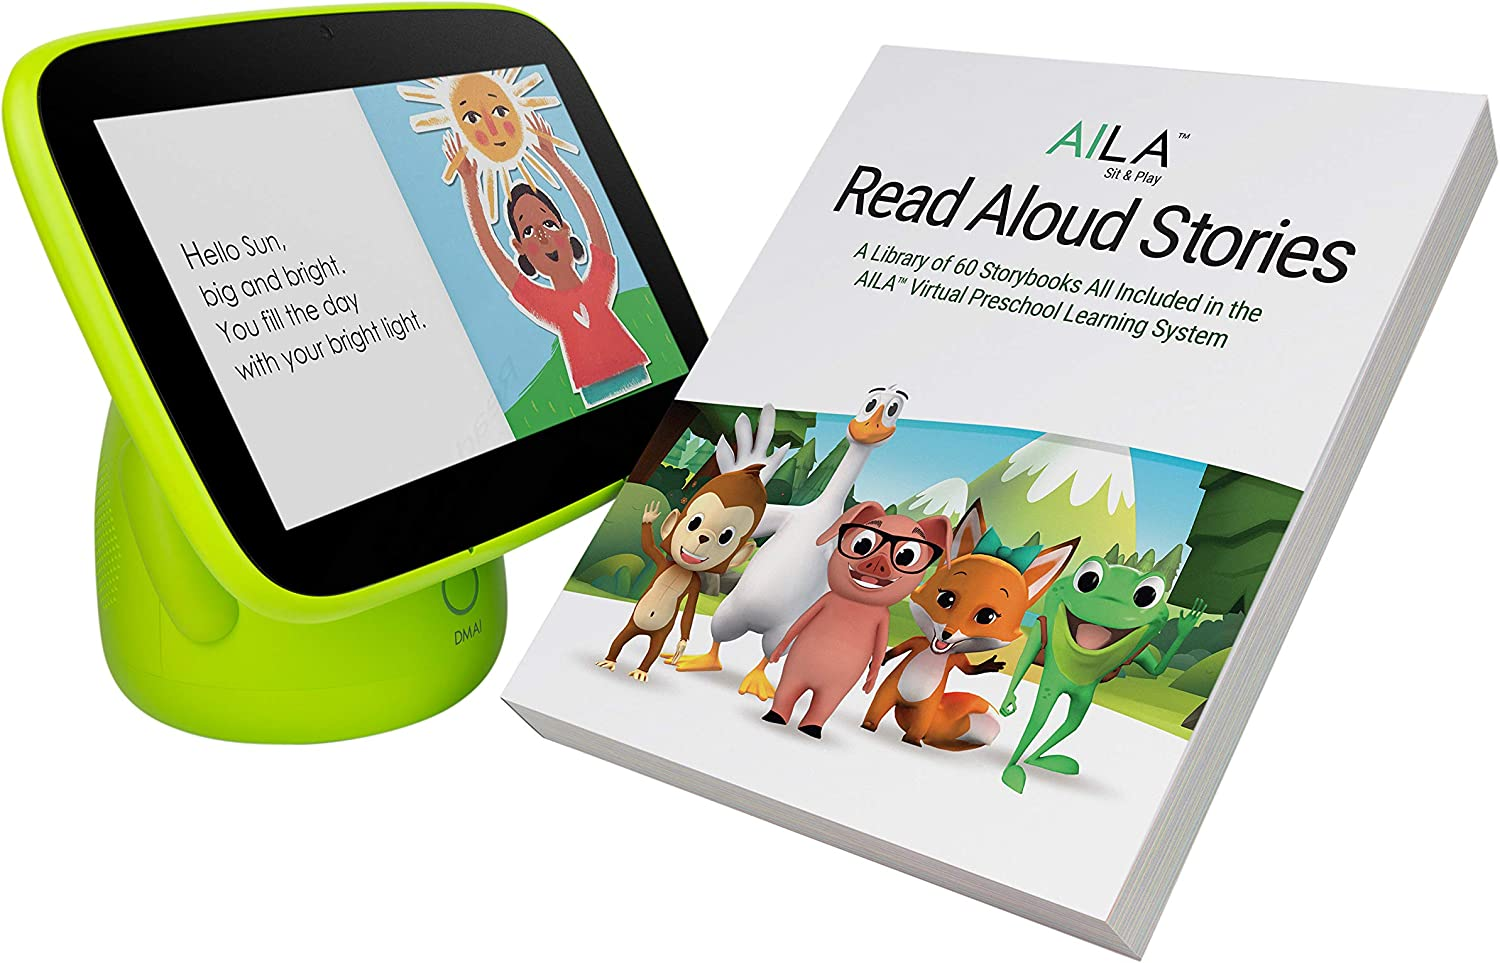 ANIMAL ISLAND Aila Sit & Play Plus Read Aloud Stories All Included Virtual Preschool Learning Systemfor Toddlers Mom's Choice Gold AwardLetters, Numbers, Stories and Songs Best Baby Gift